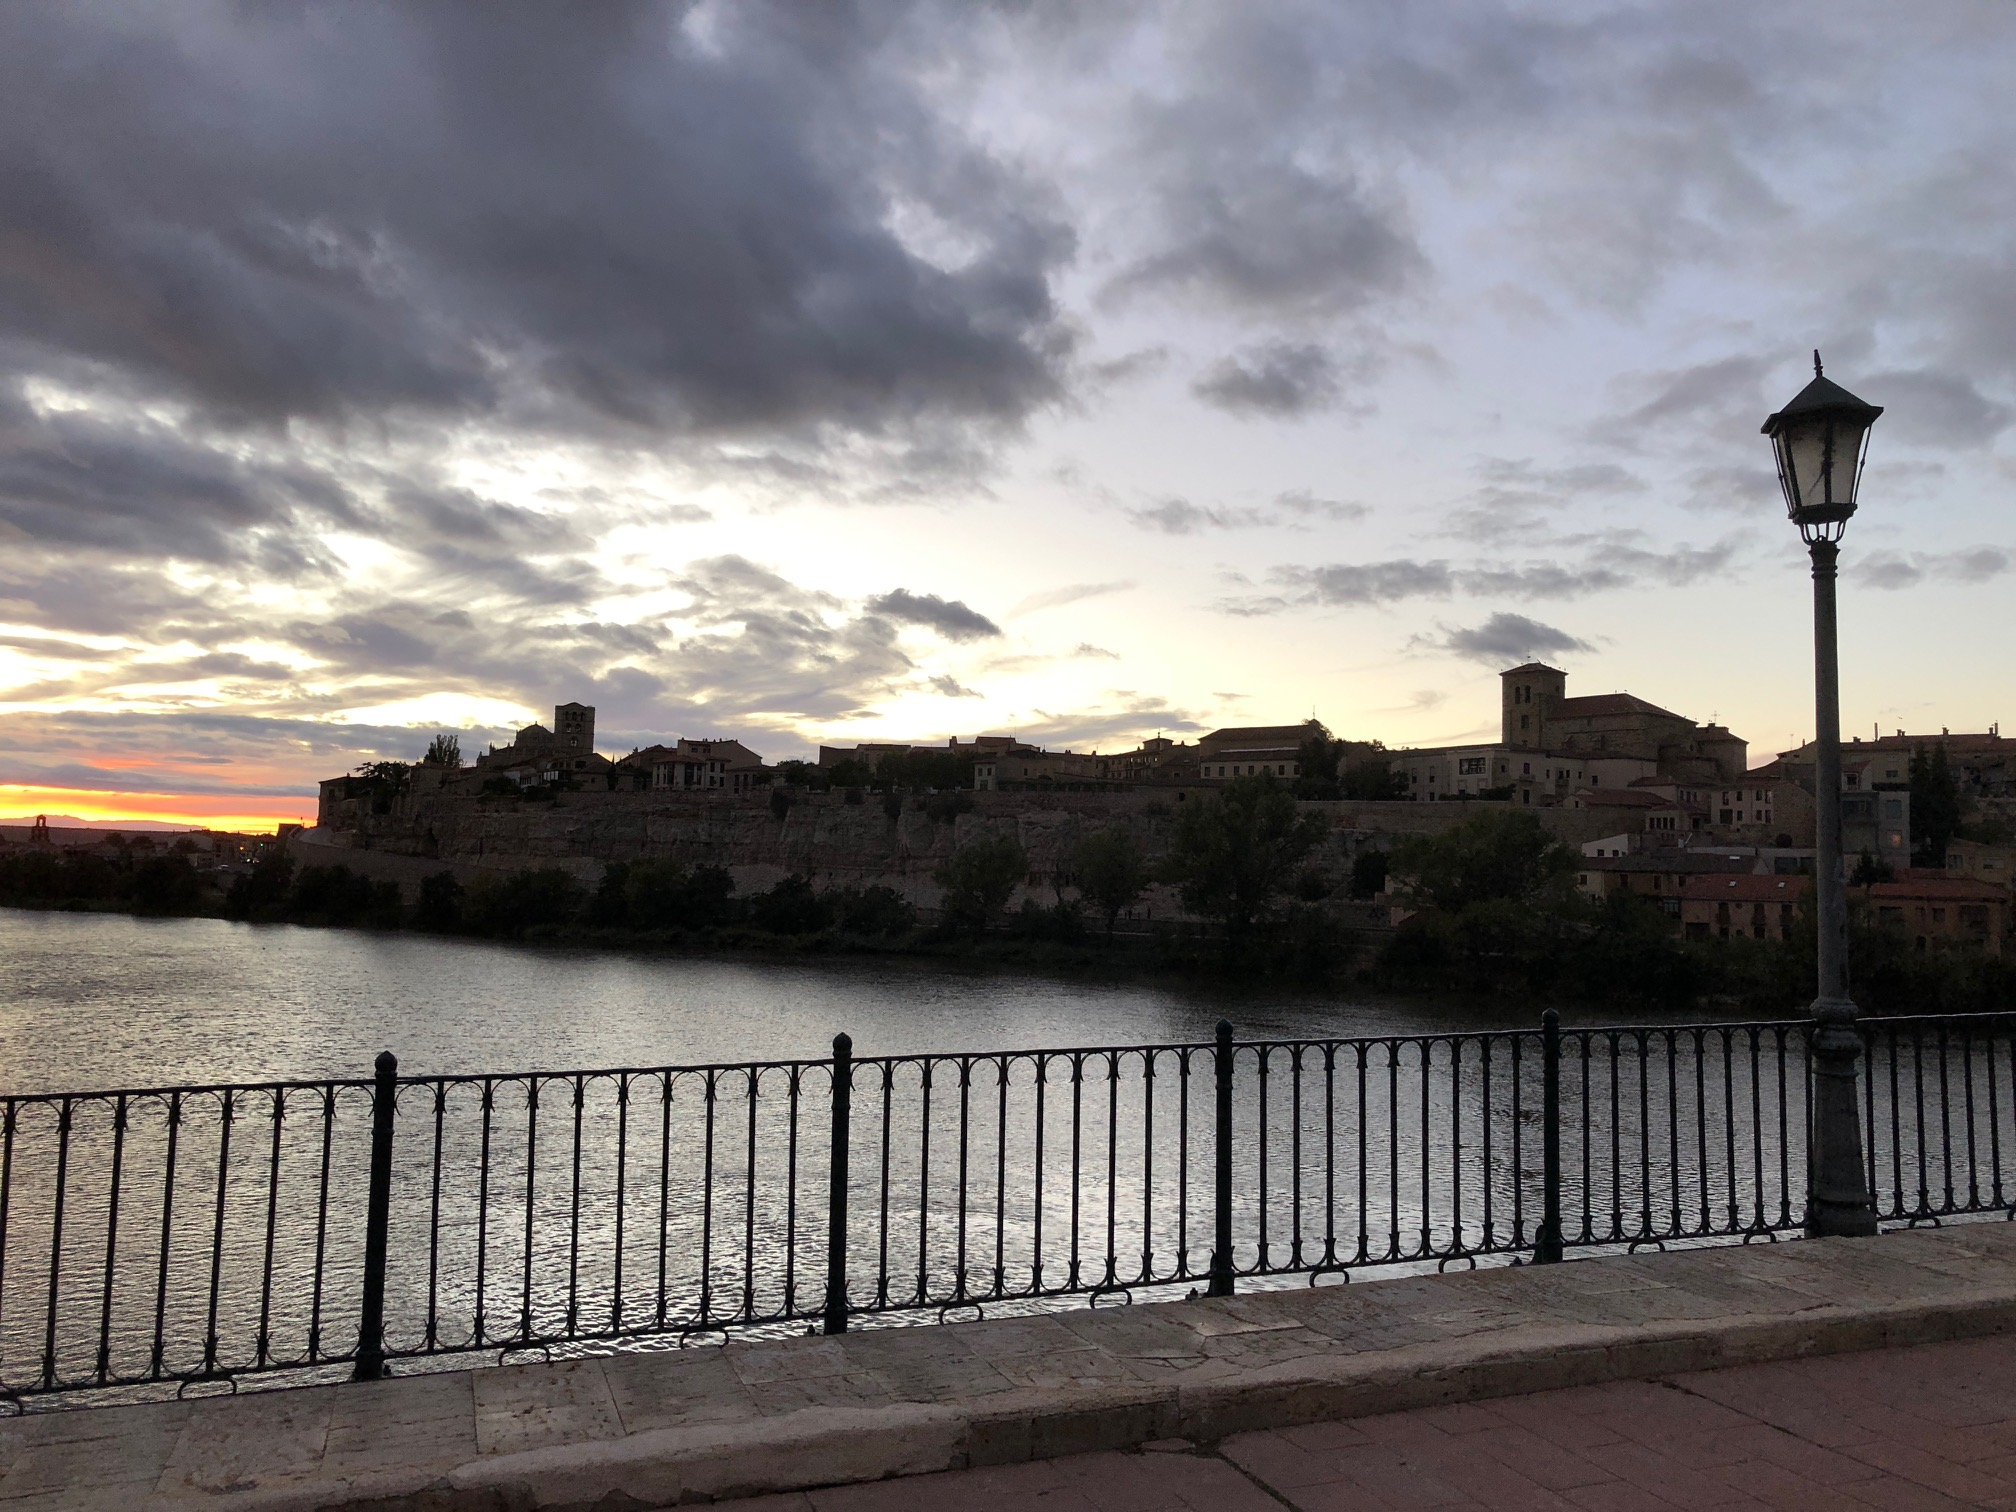 Looking back on Zamora